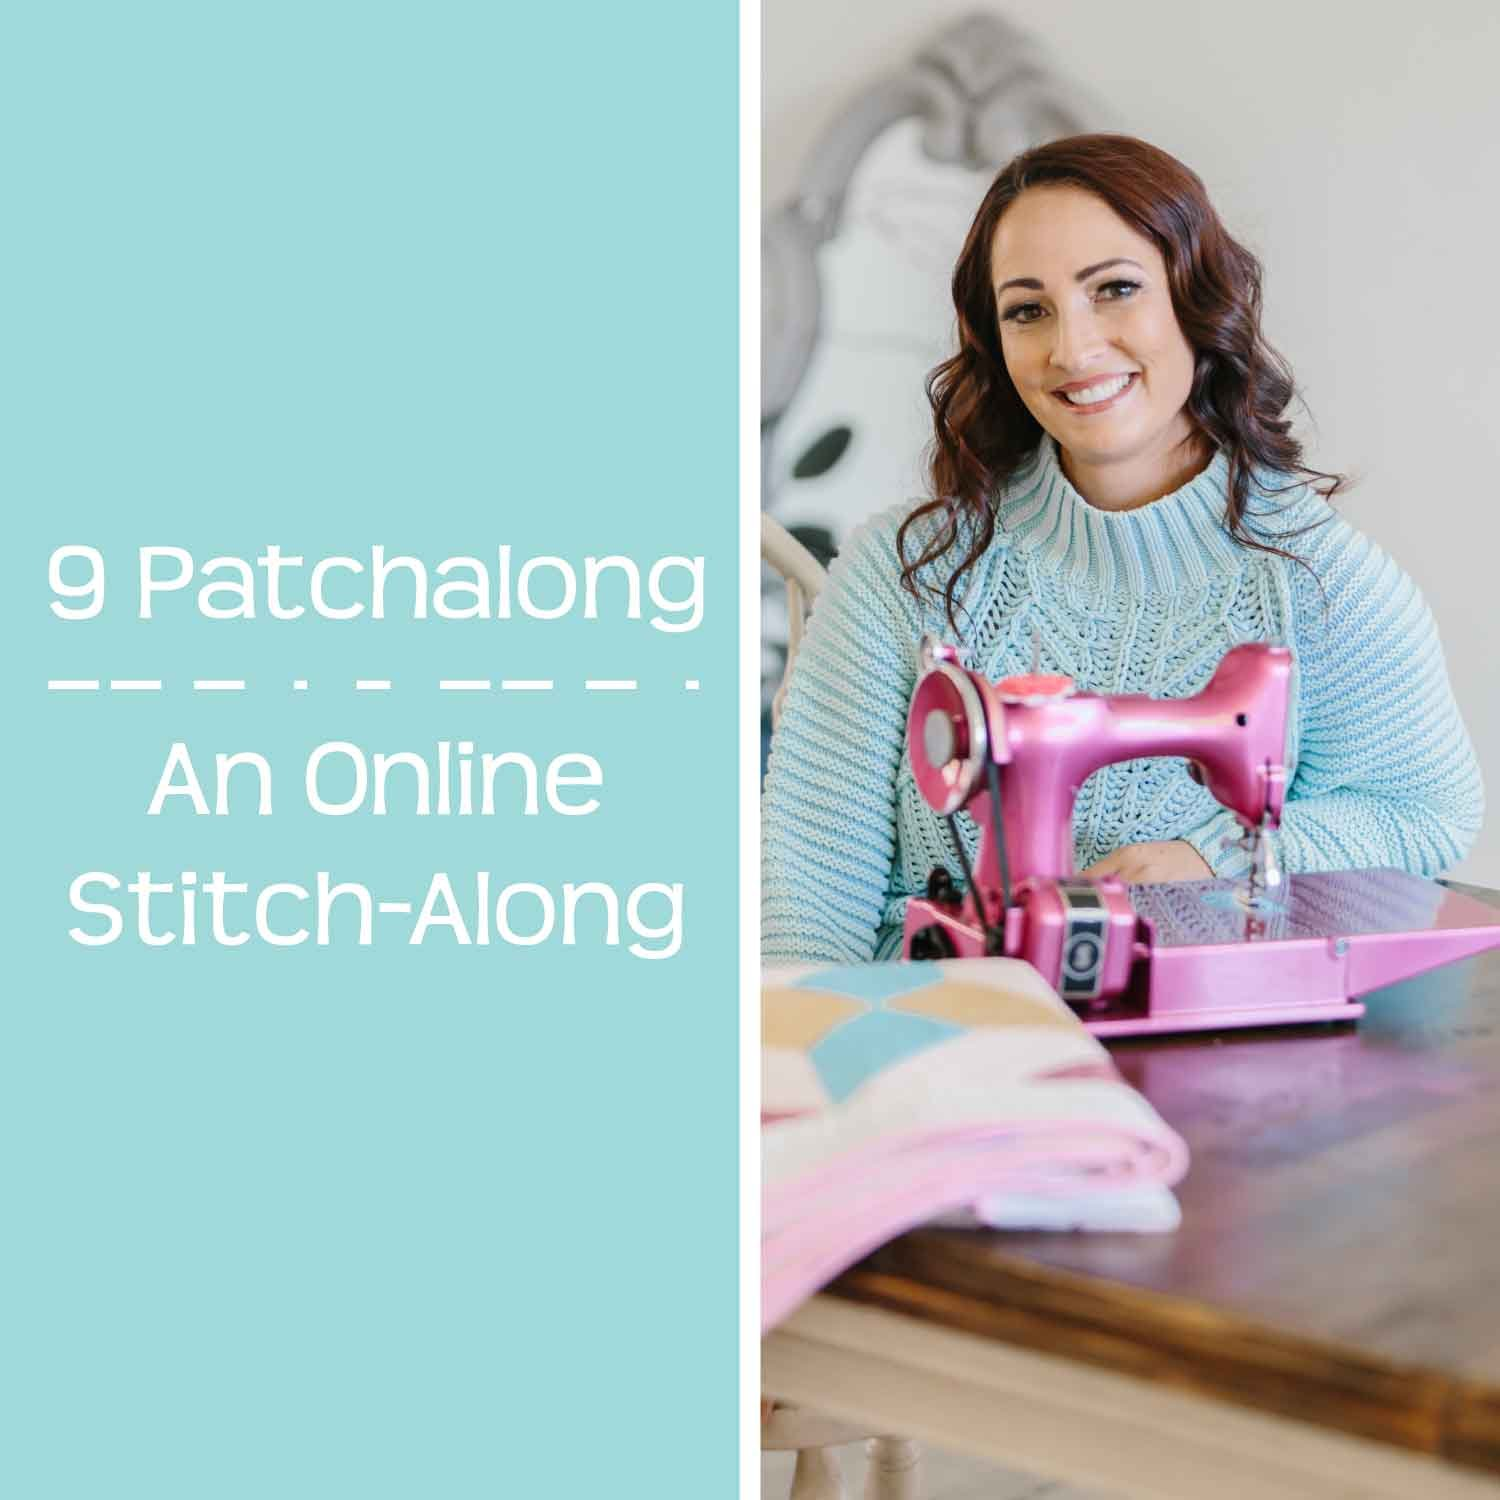 9 Patchalong